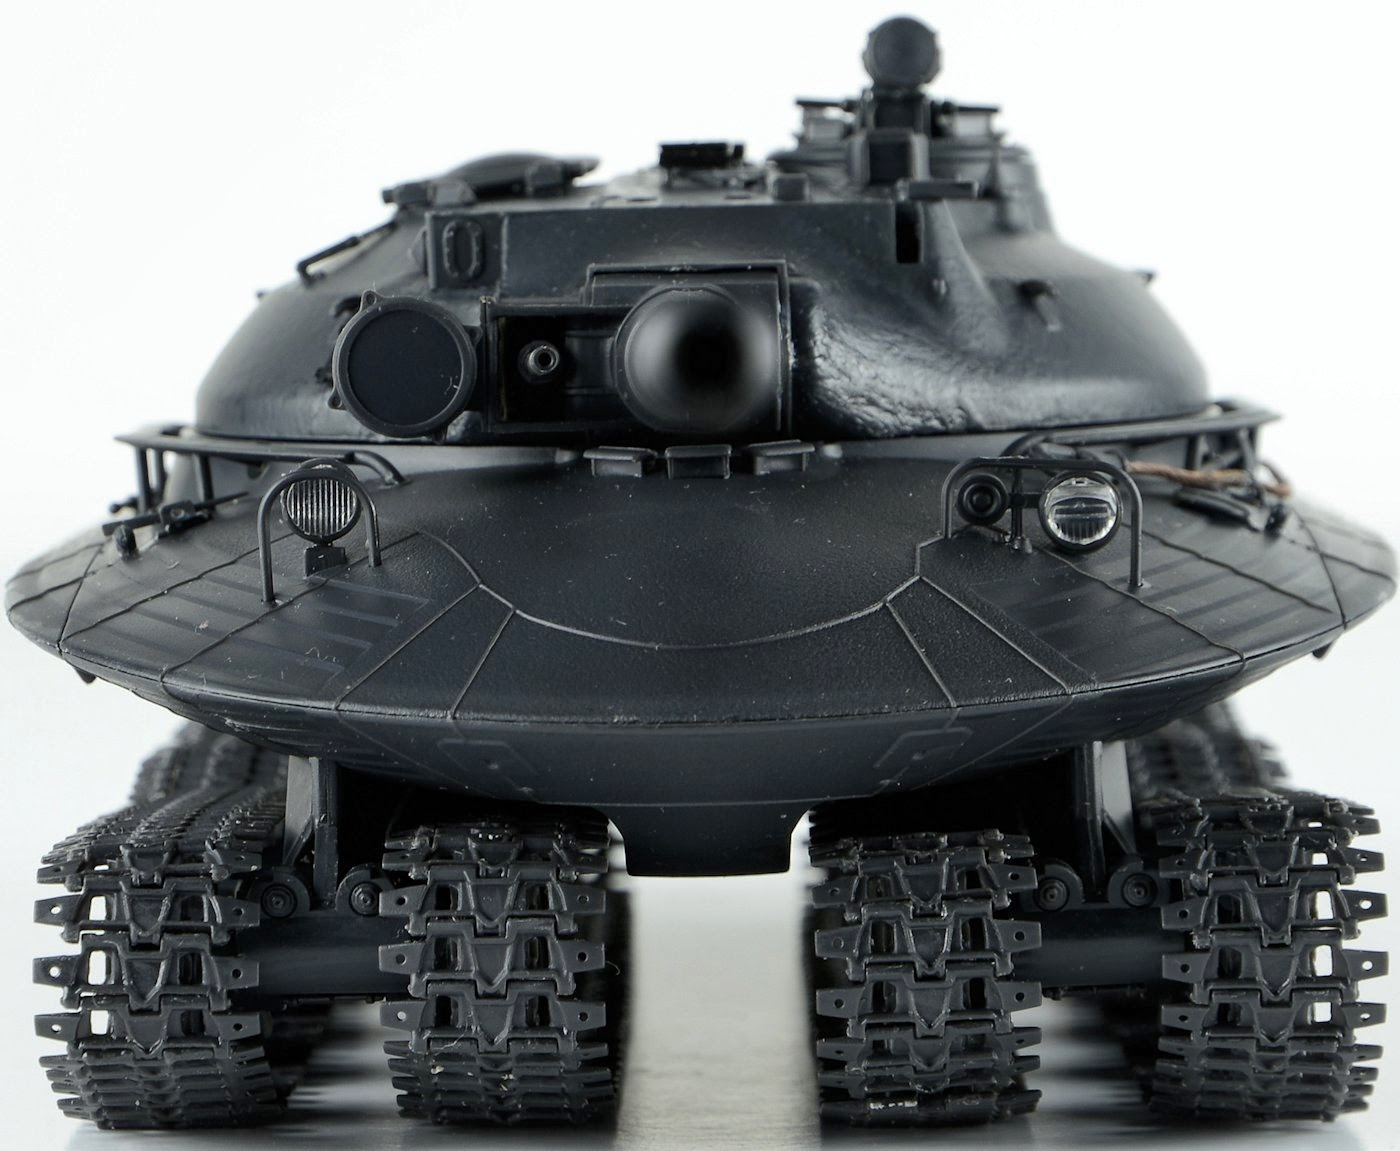 1/35th scale Takom Object 279 Build Review